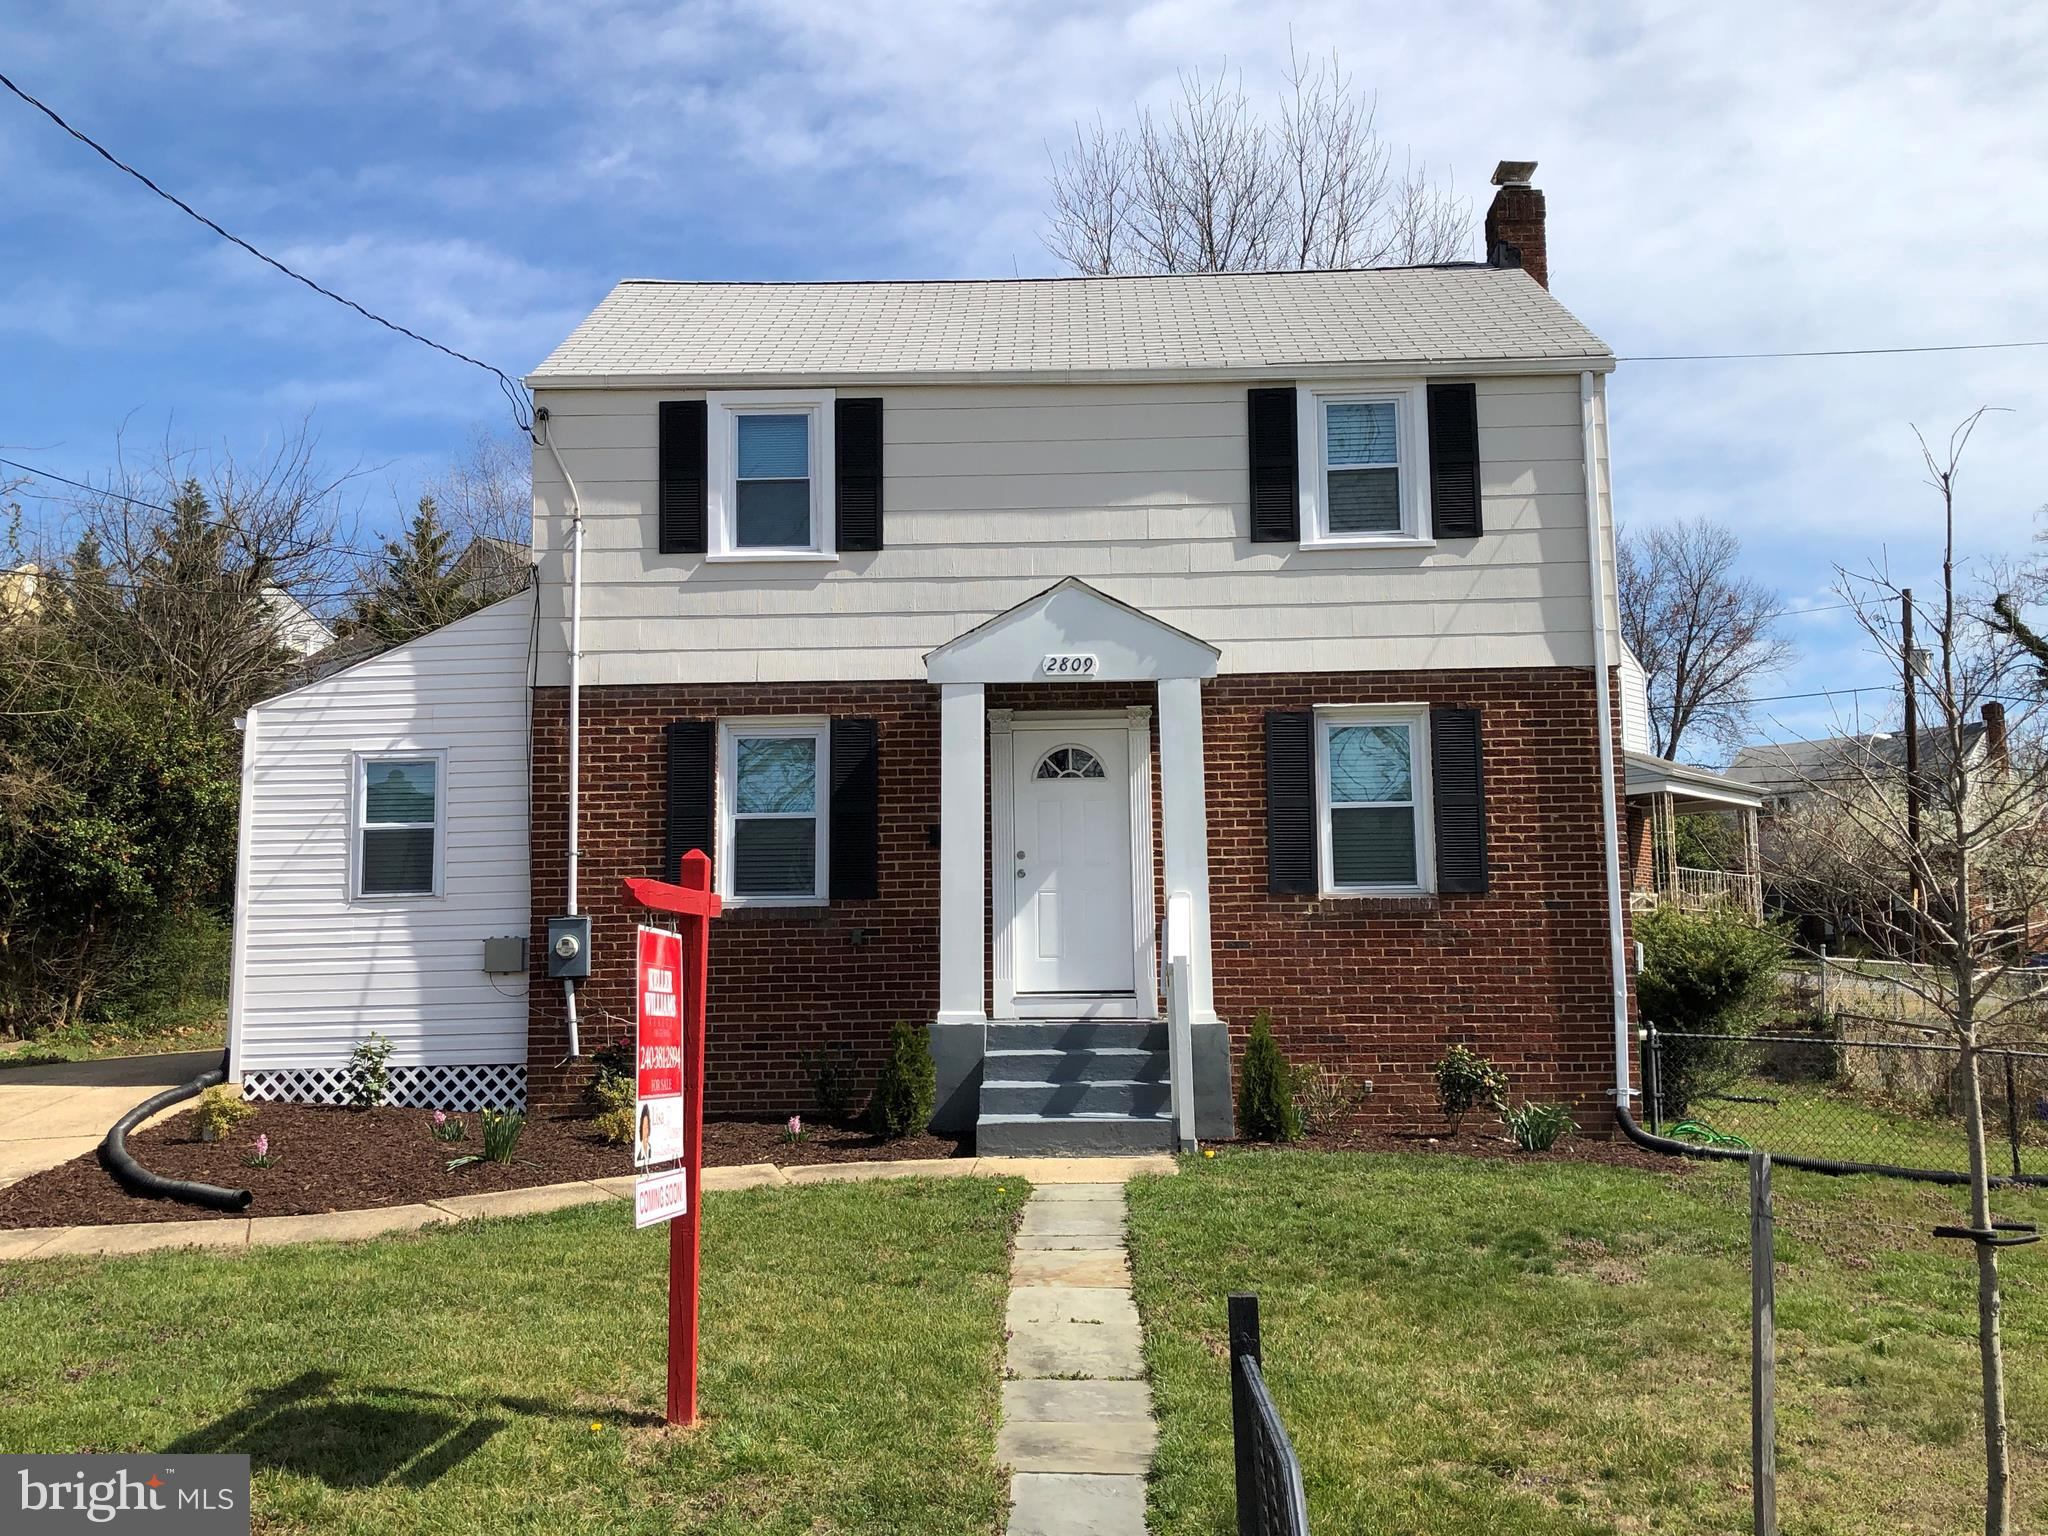 2809 63RD AVENUE, CHEVERLY, MD 20785